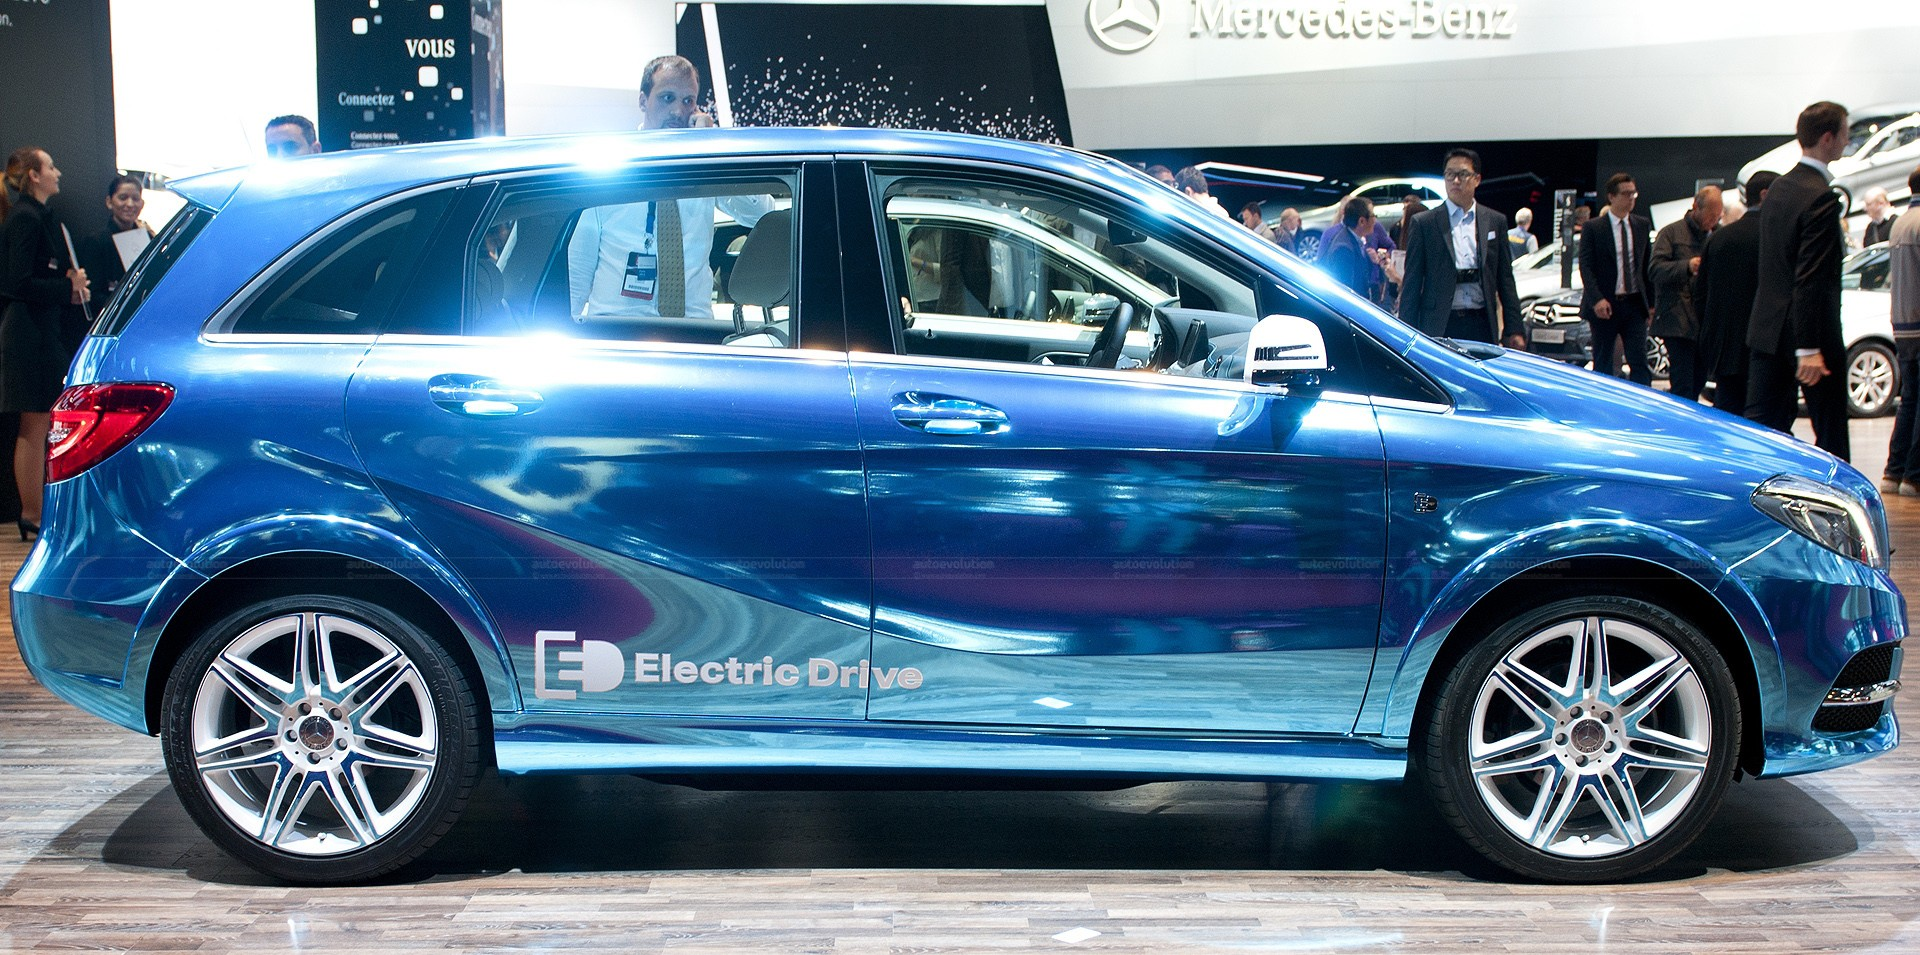 paris-2012-mercedes-benz-b-class-electric-drive-live-photos_8